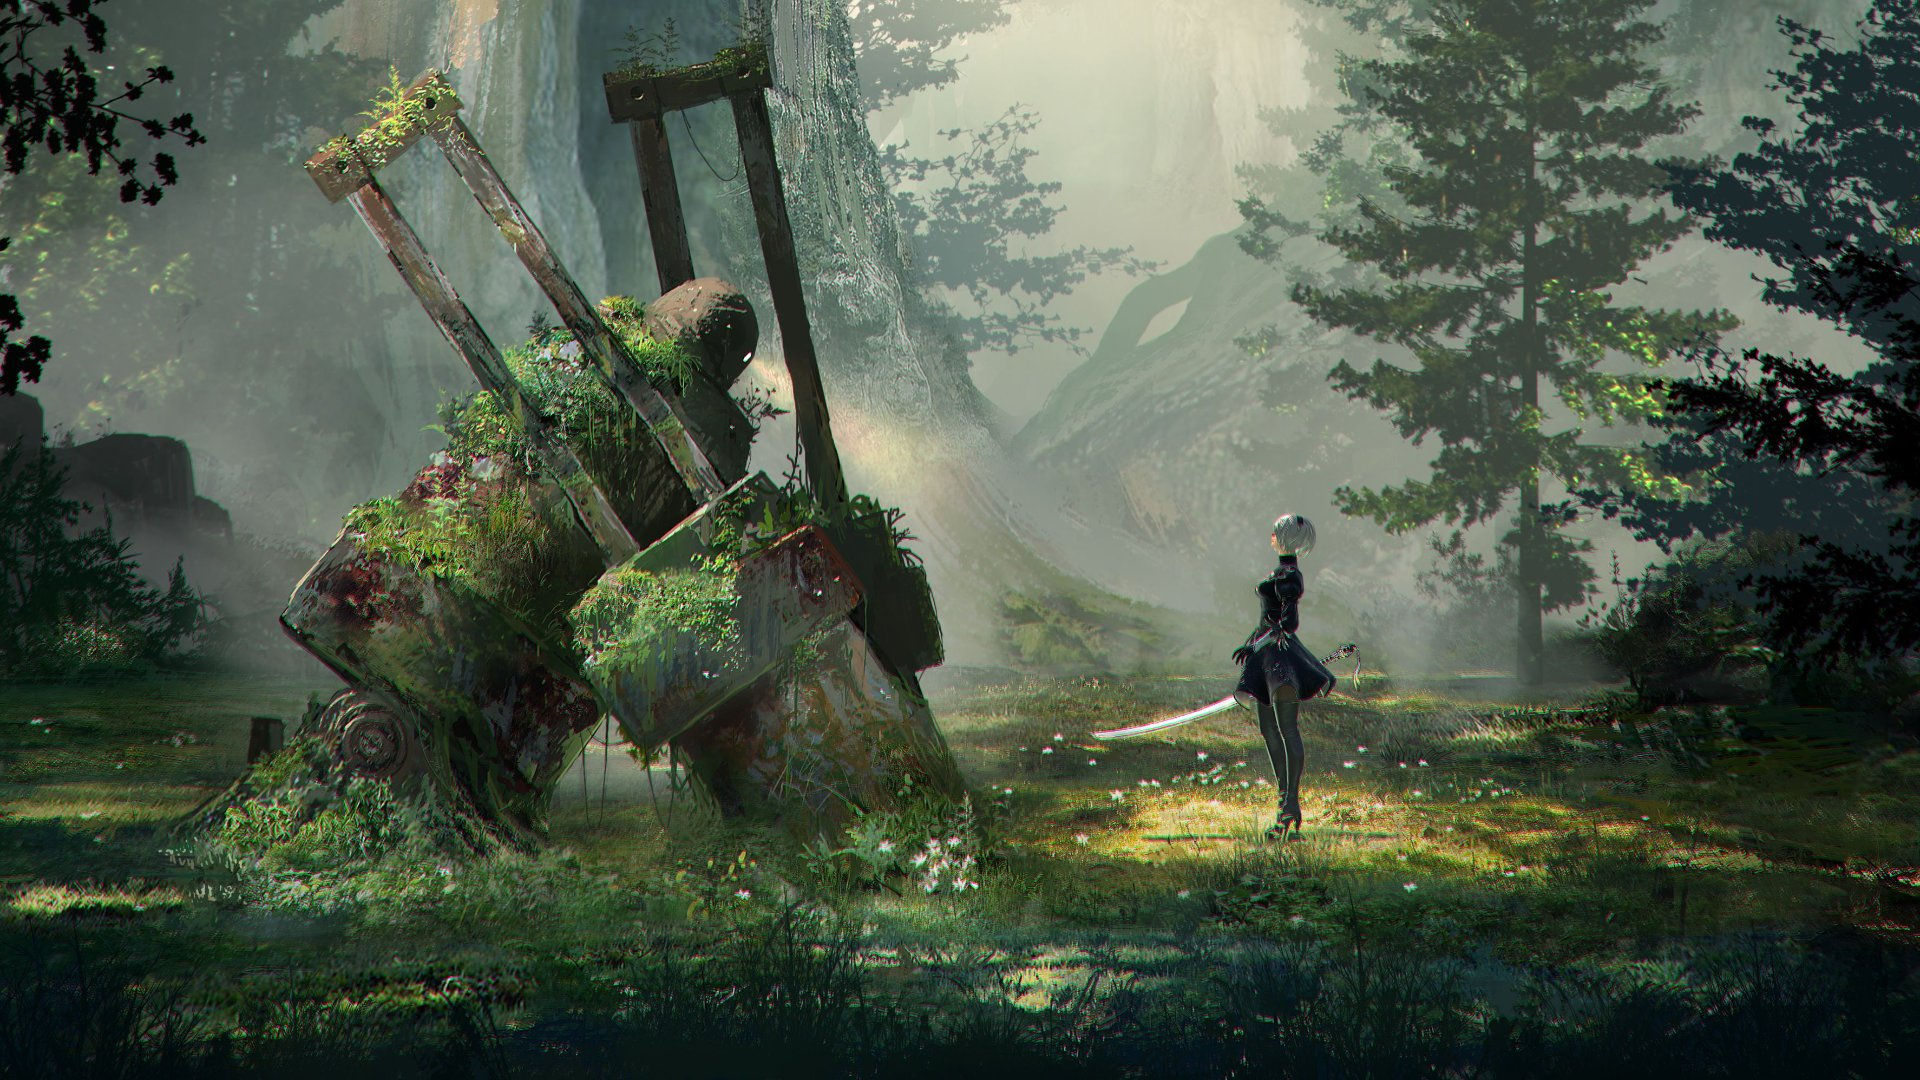 In a piece of concept art, a figure with sword and shield stands in profile, viewing a kind of shrine or natural formation of some significance